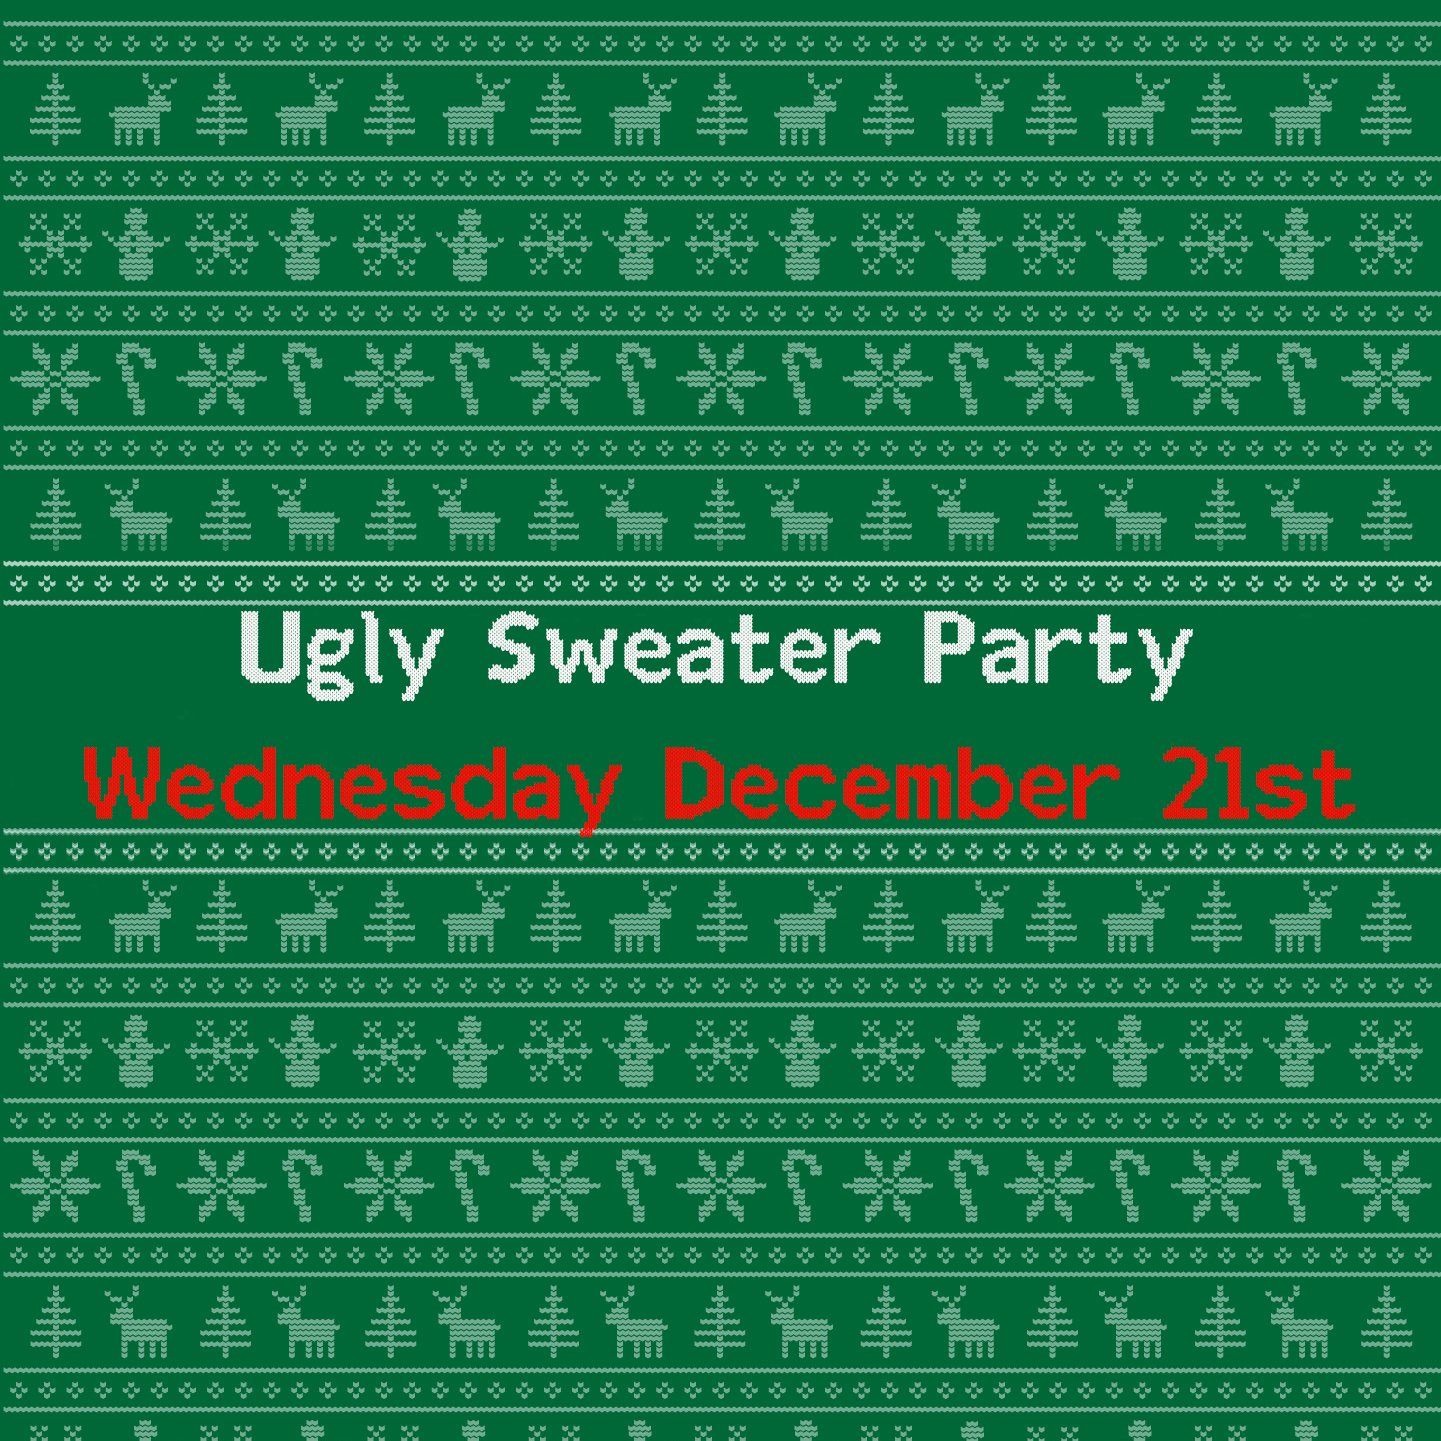 On Wednesday December 21st we'll be holding an ugly sweater party! Join us for food, Christmas tunes, spiked egg nog and all the ugly sweaters you can handle!